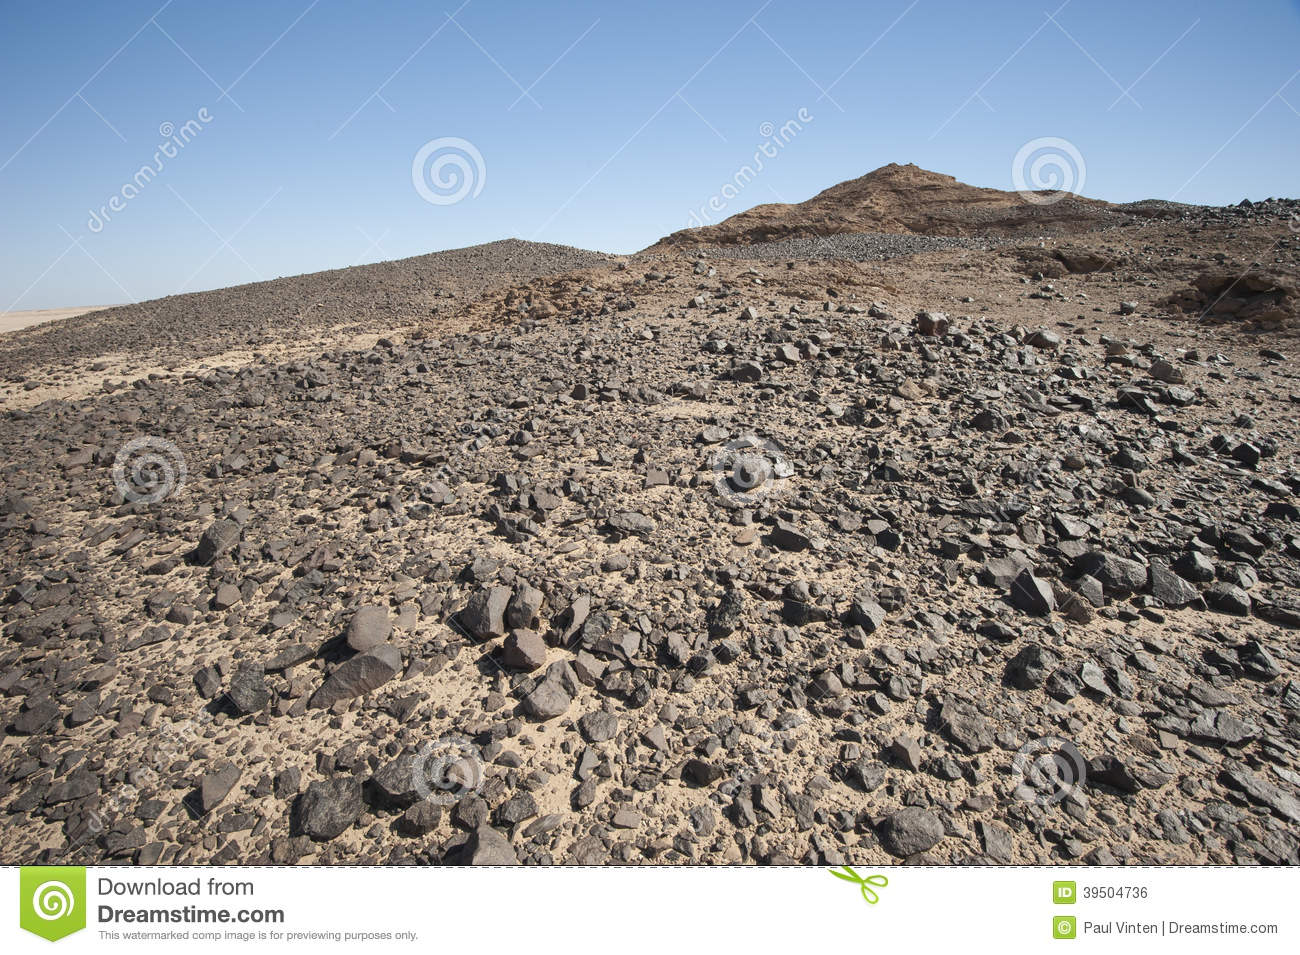 Rocky mountain slope in a desert